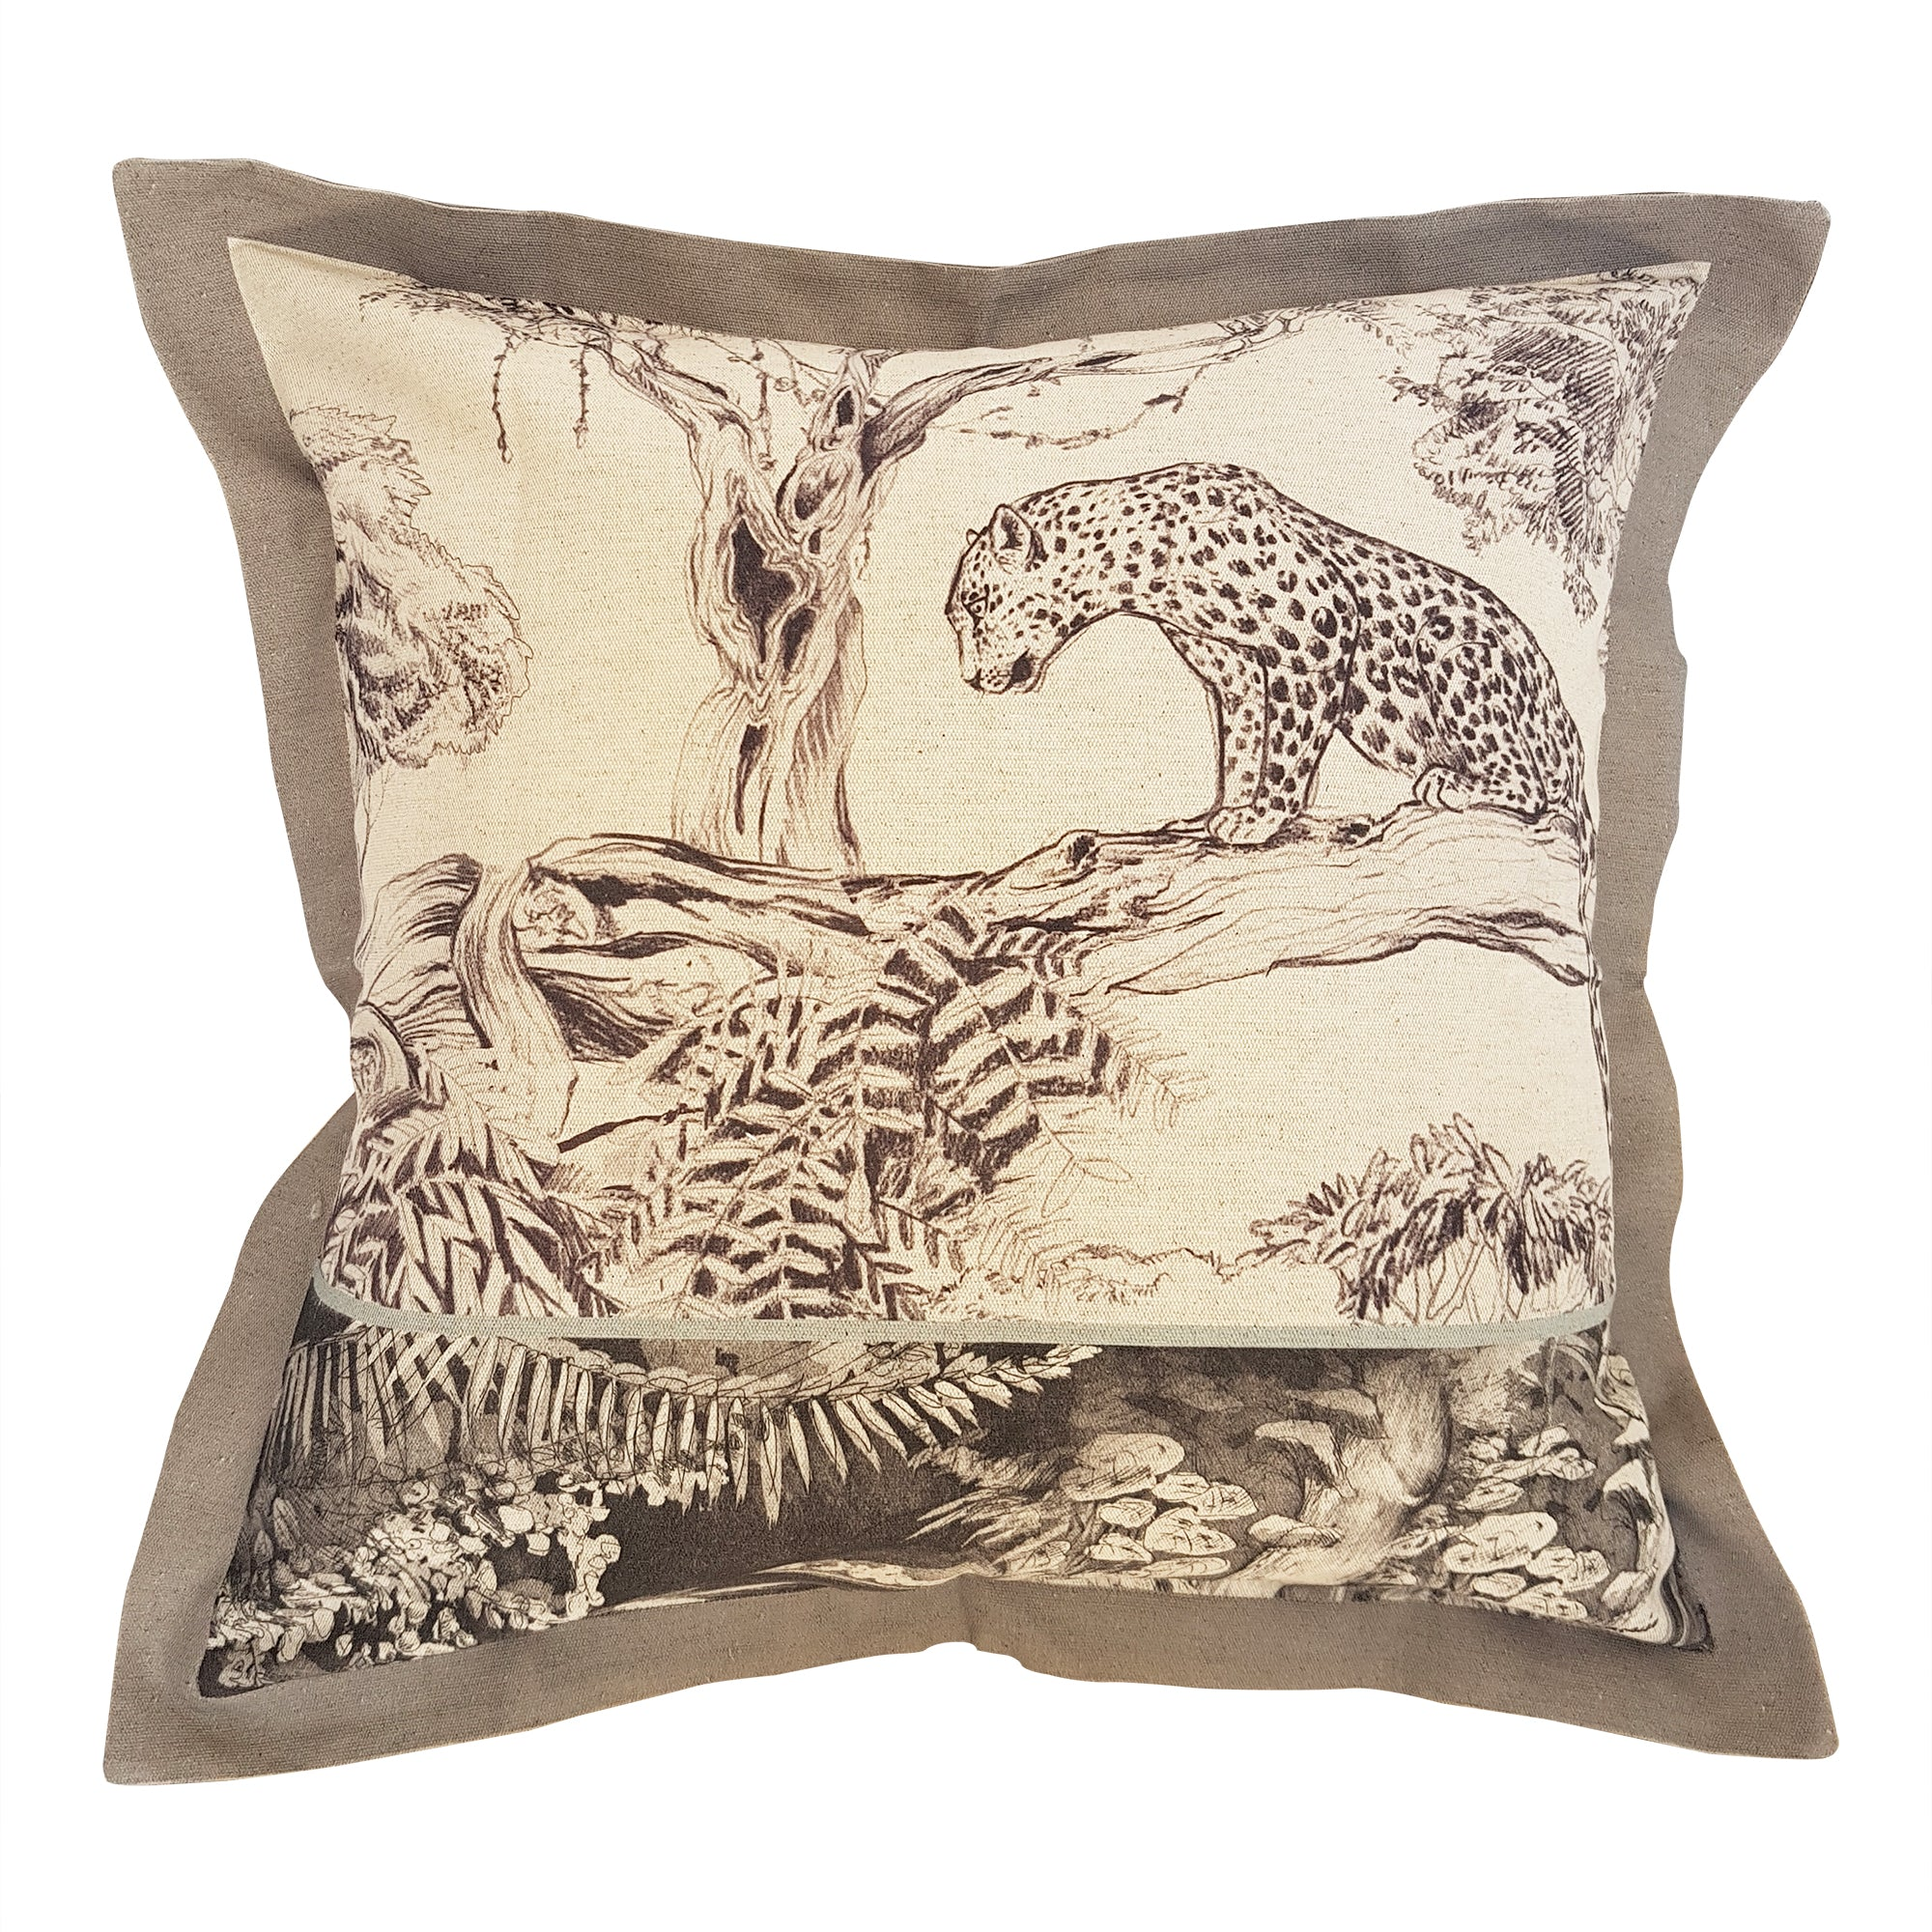 Neutral Leopard Cushion Cover (Standard Linen-cotton blend)